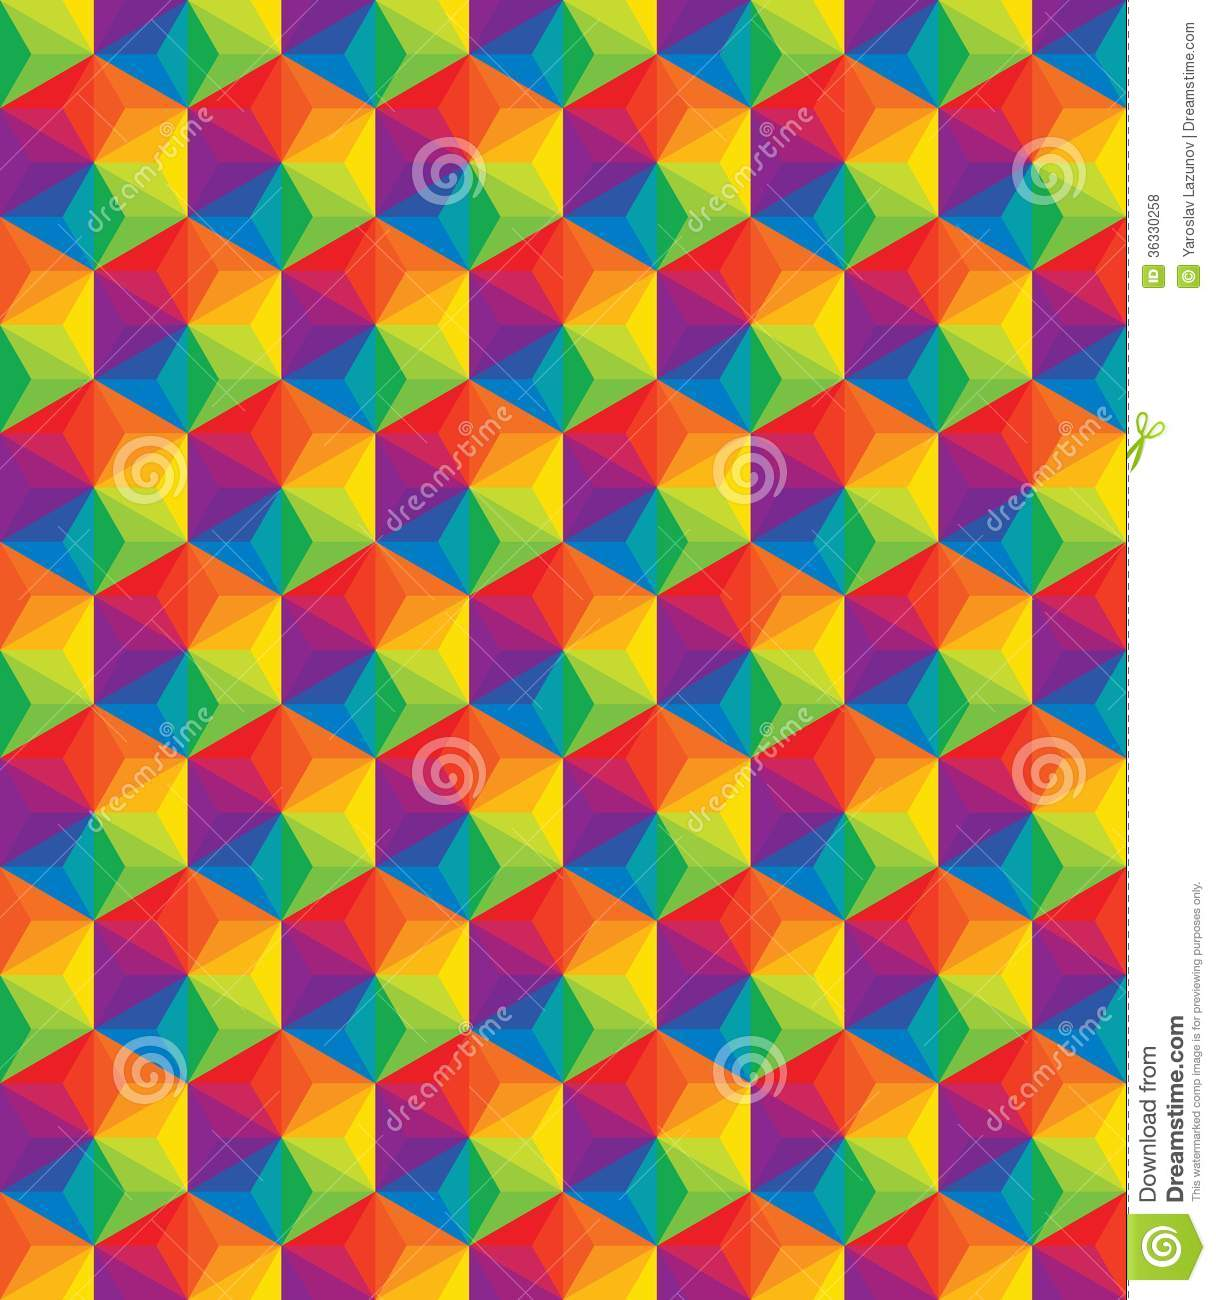 17 colorful geometric shape template images geometric Geometric patterns